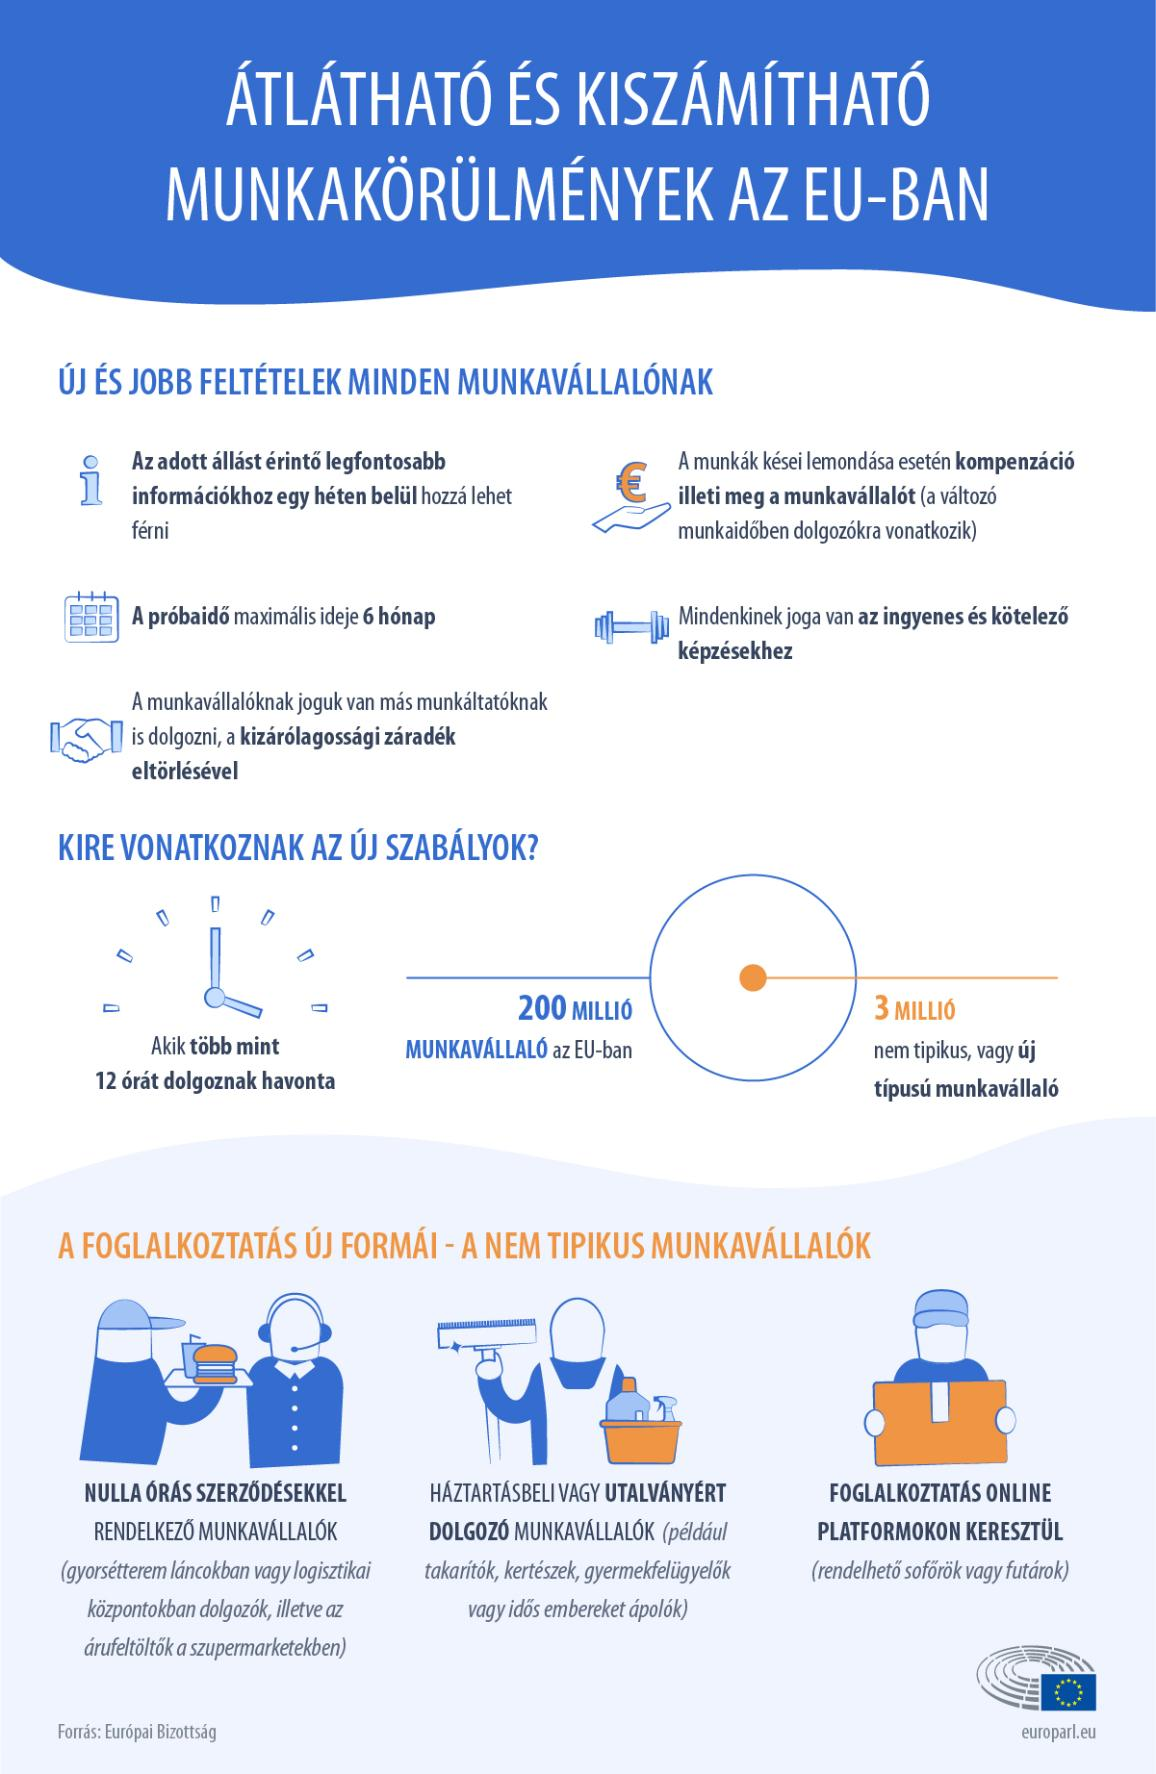 infographic on working conditions in the European Union